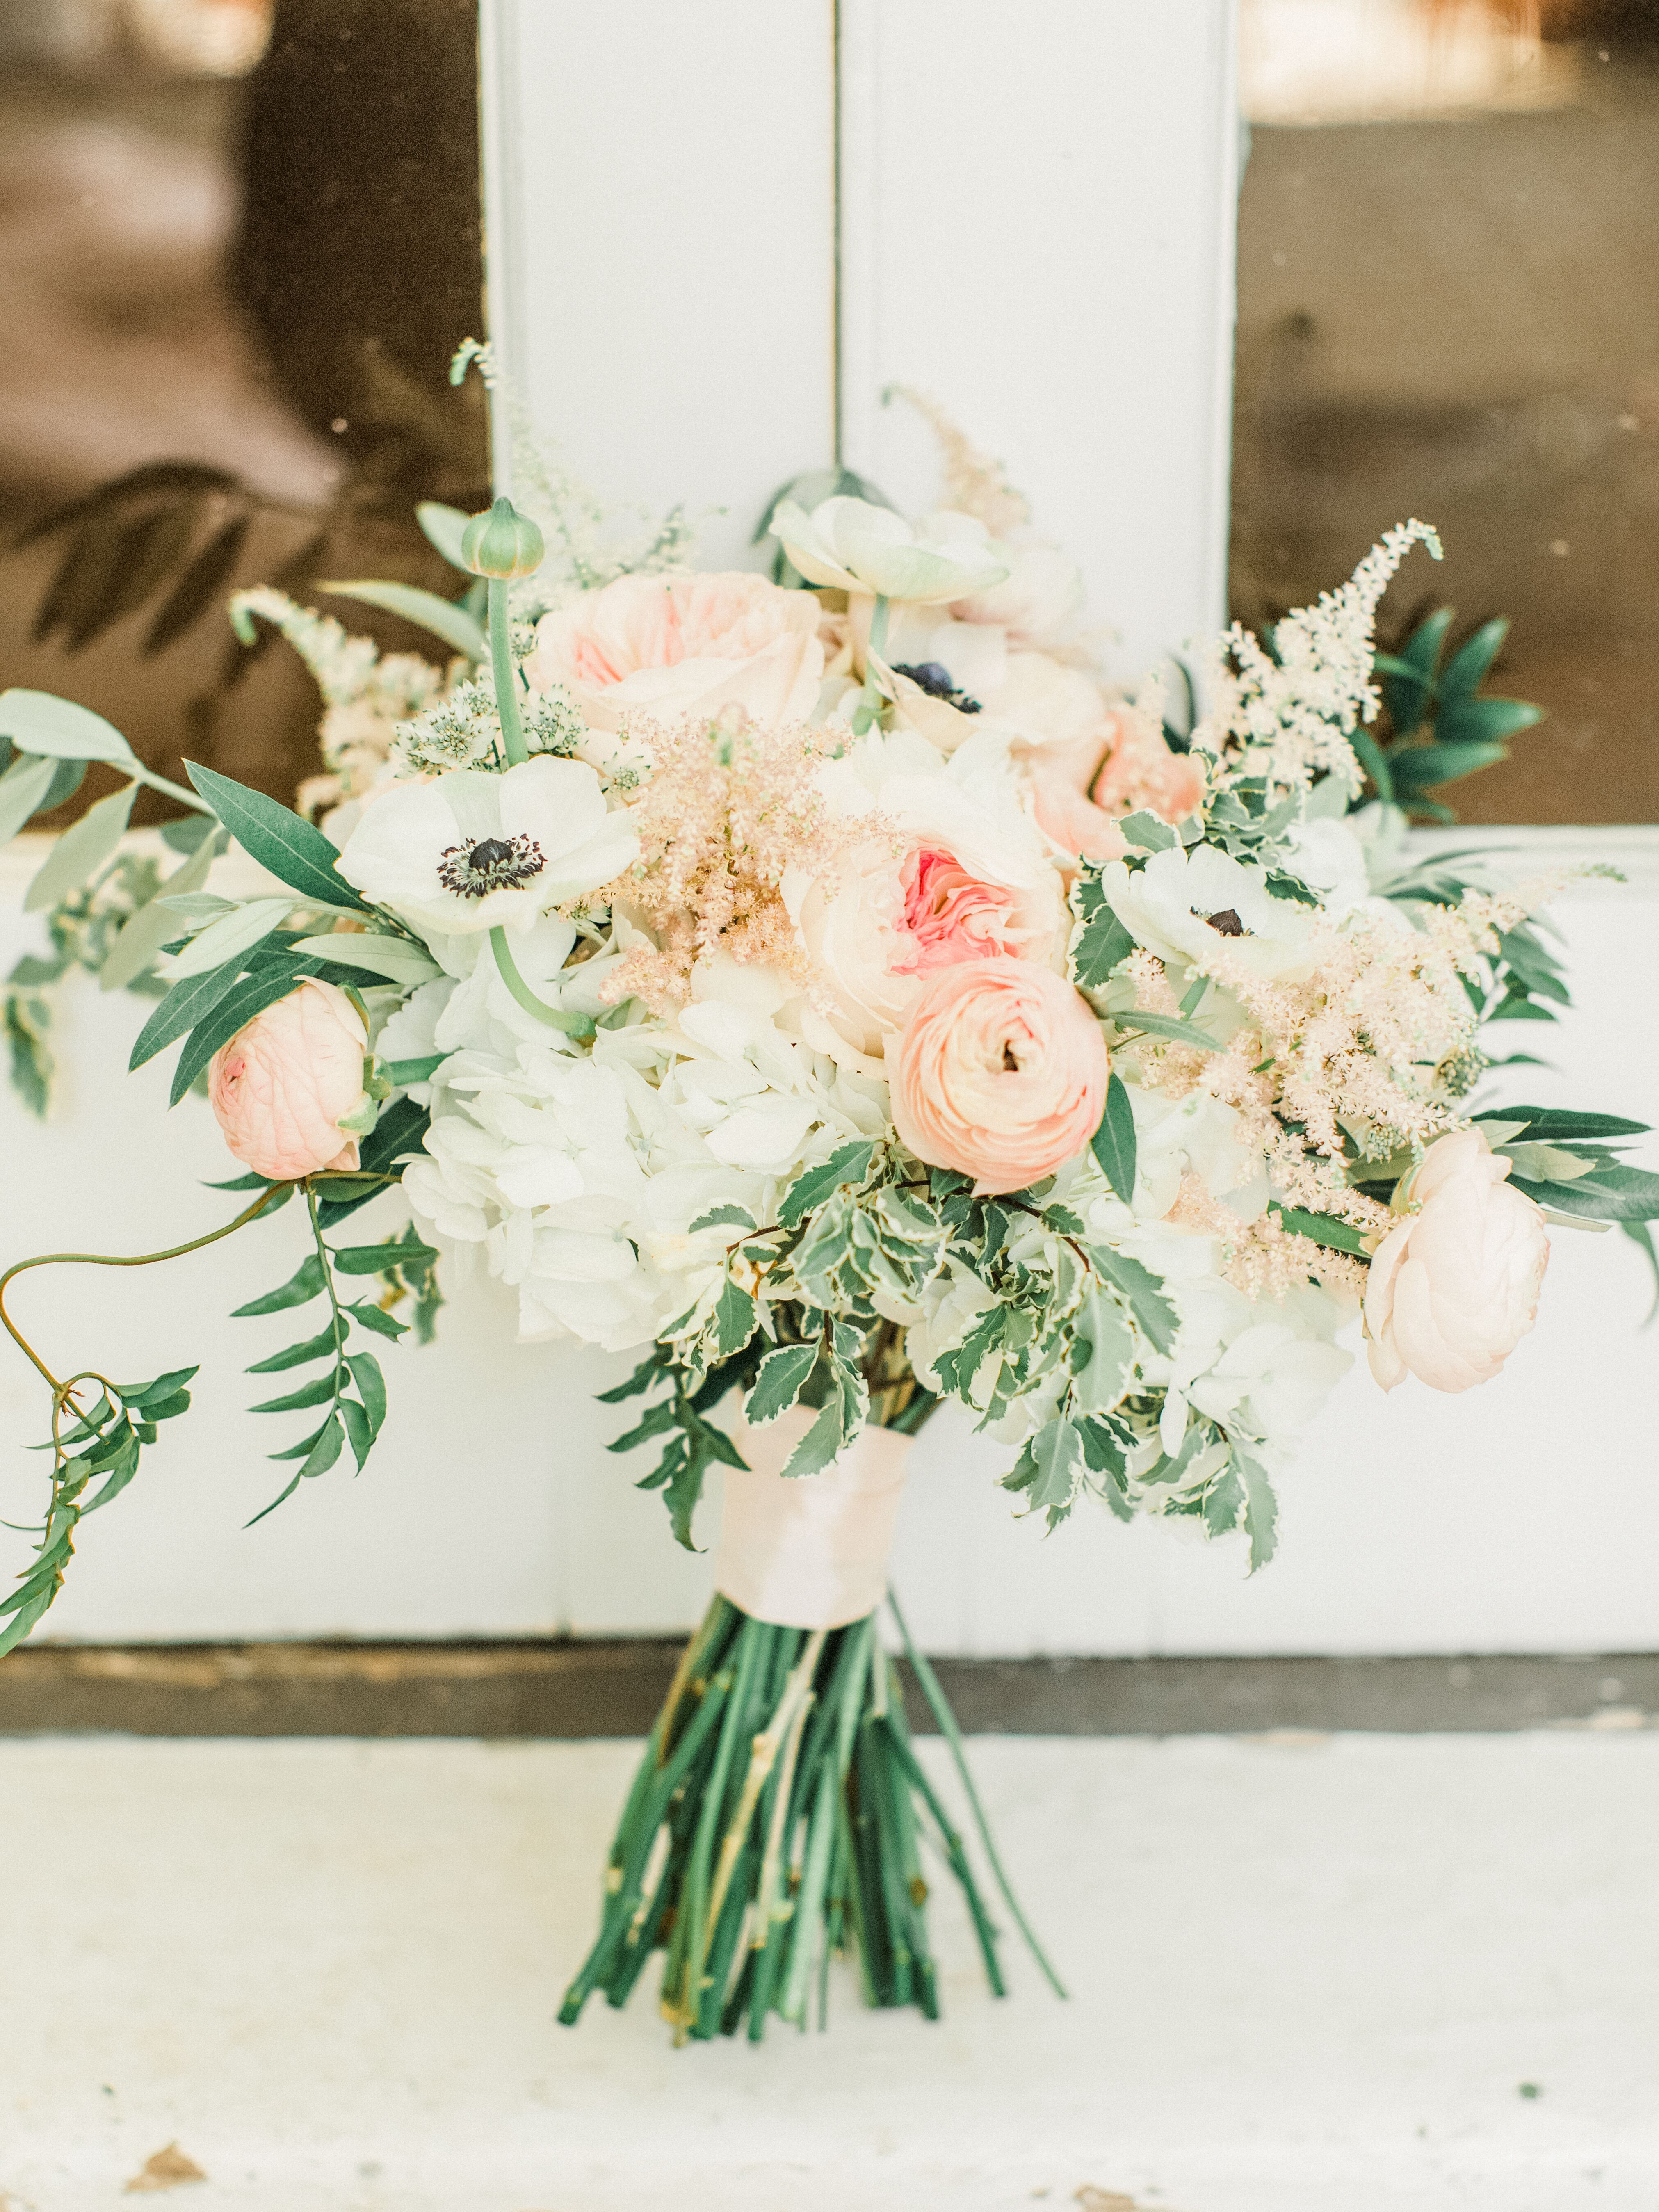 Romantic Bouquet With Pink Ranunculus Peonies Anemones And Greenery